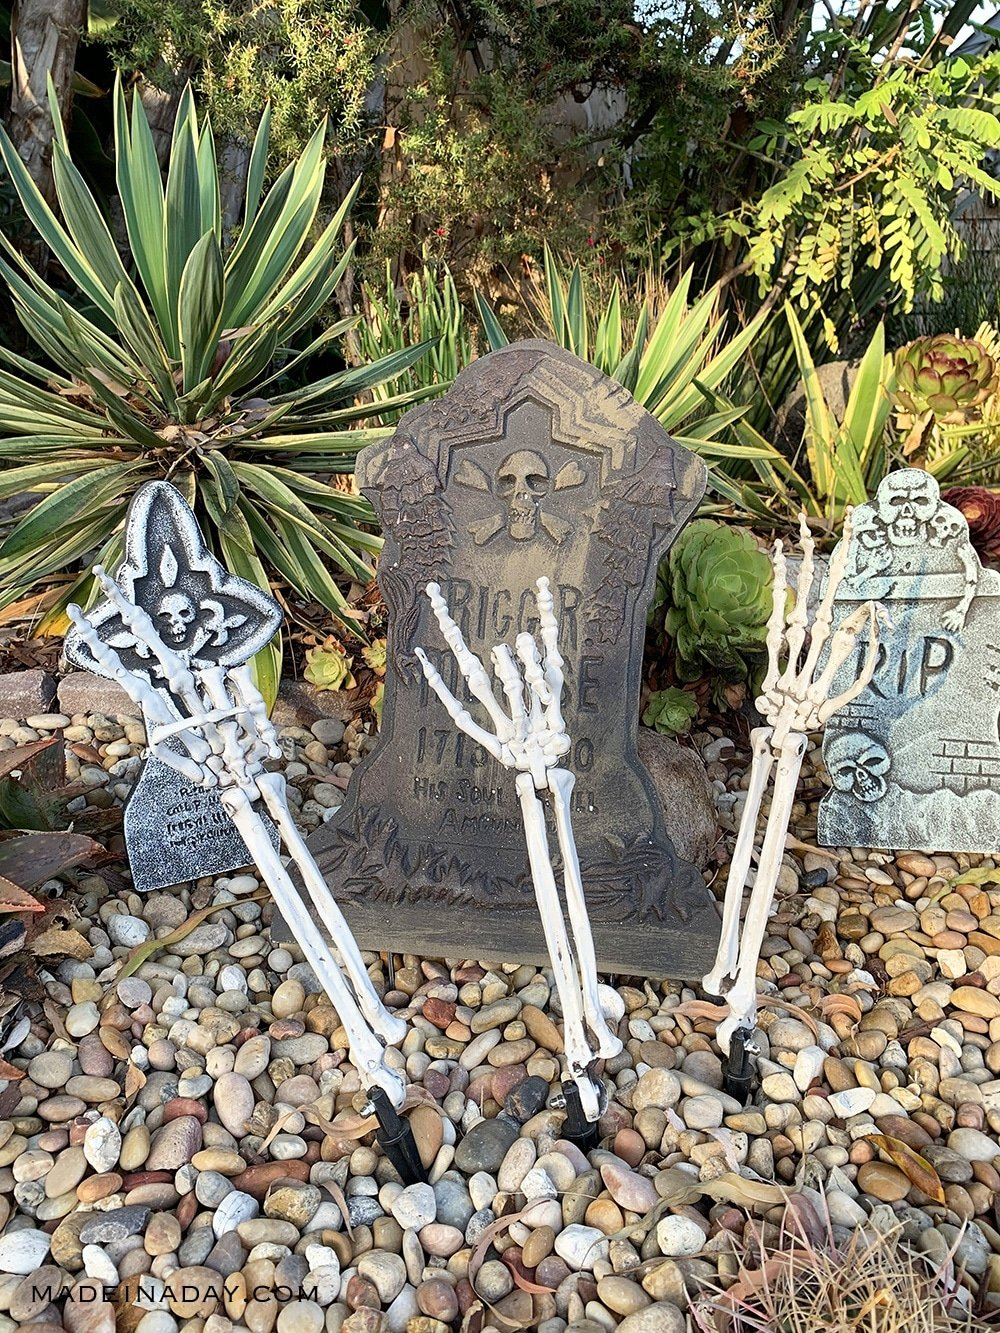 Skeleton groundbreaker hands, skeleton hand peace sign, skeleton hand rock and roll sign, skeleton hand ok